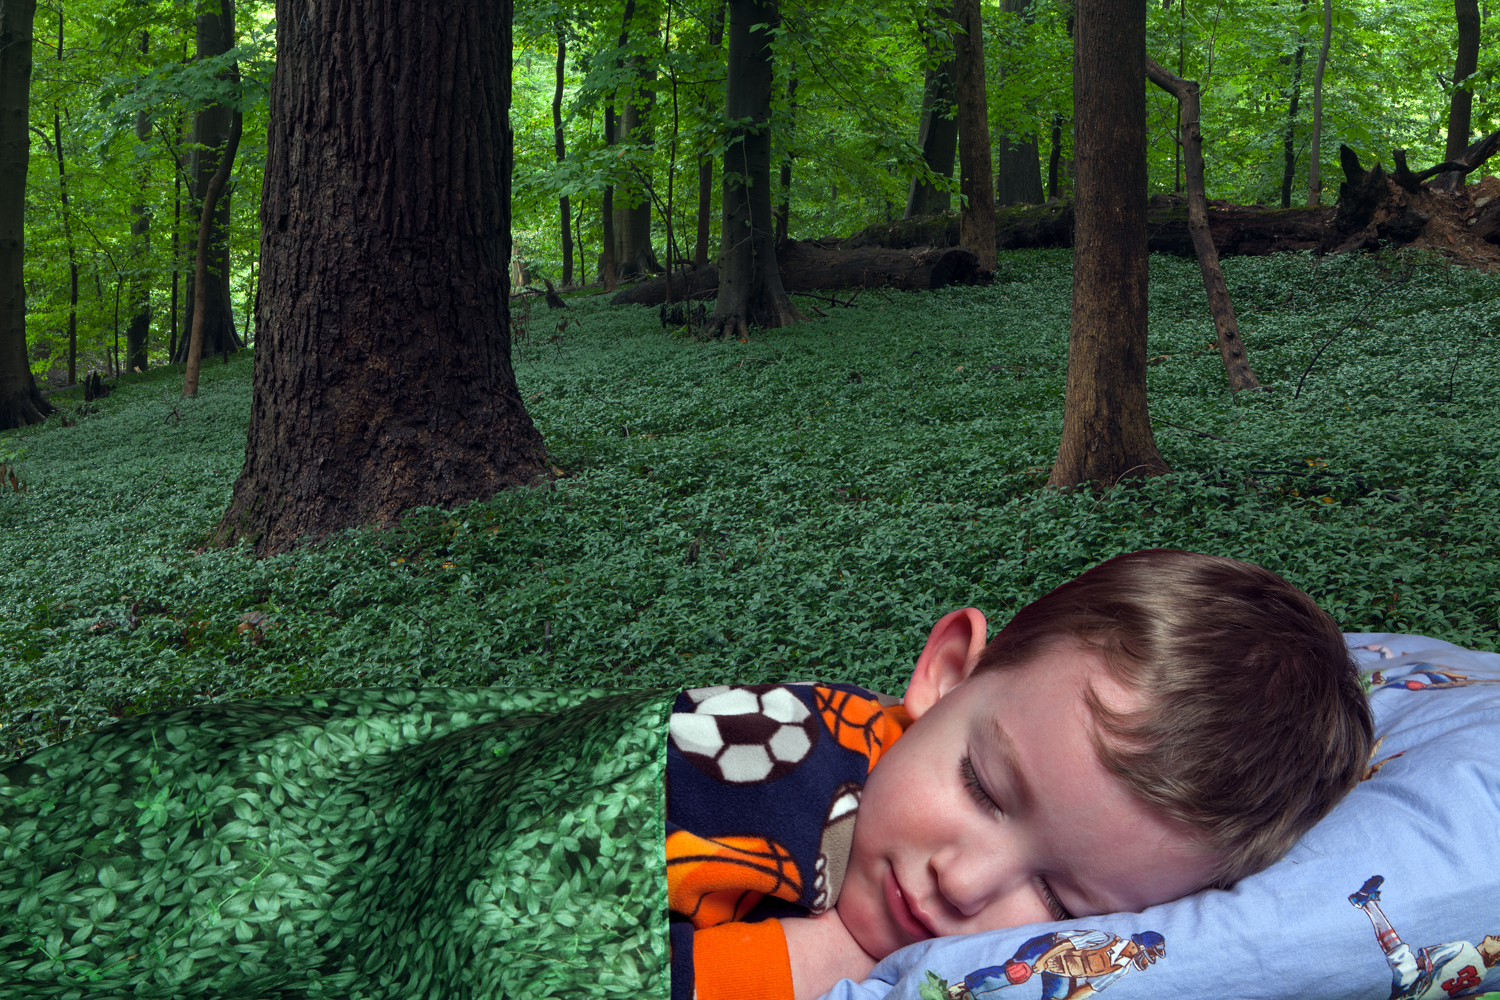 Ground Cover, 2012, archival pigment print on paper